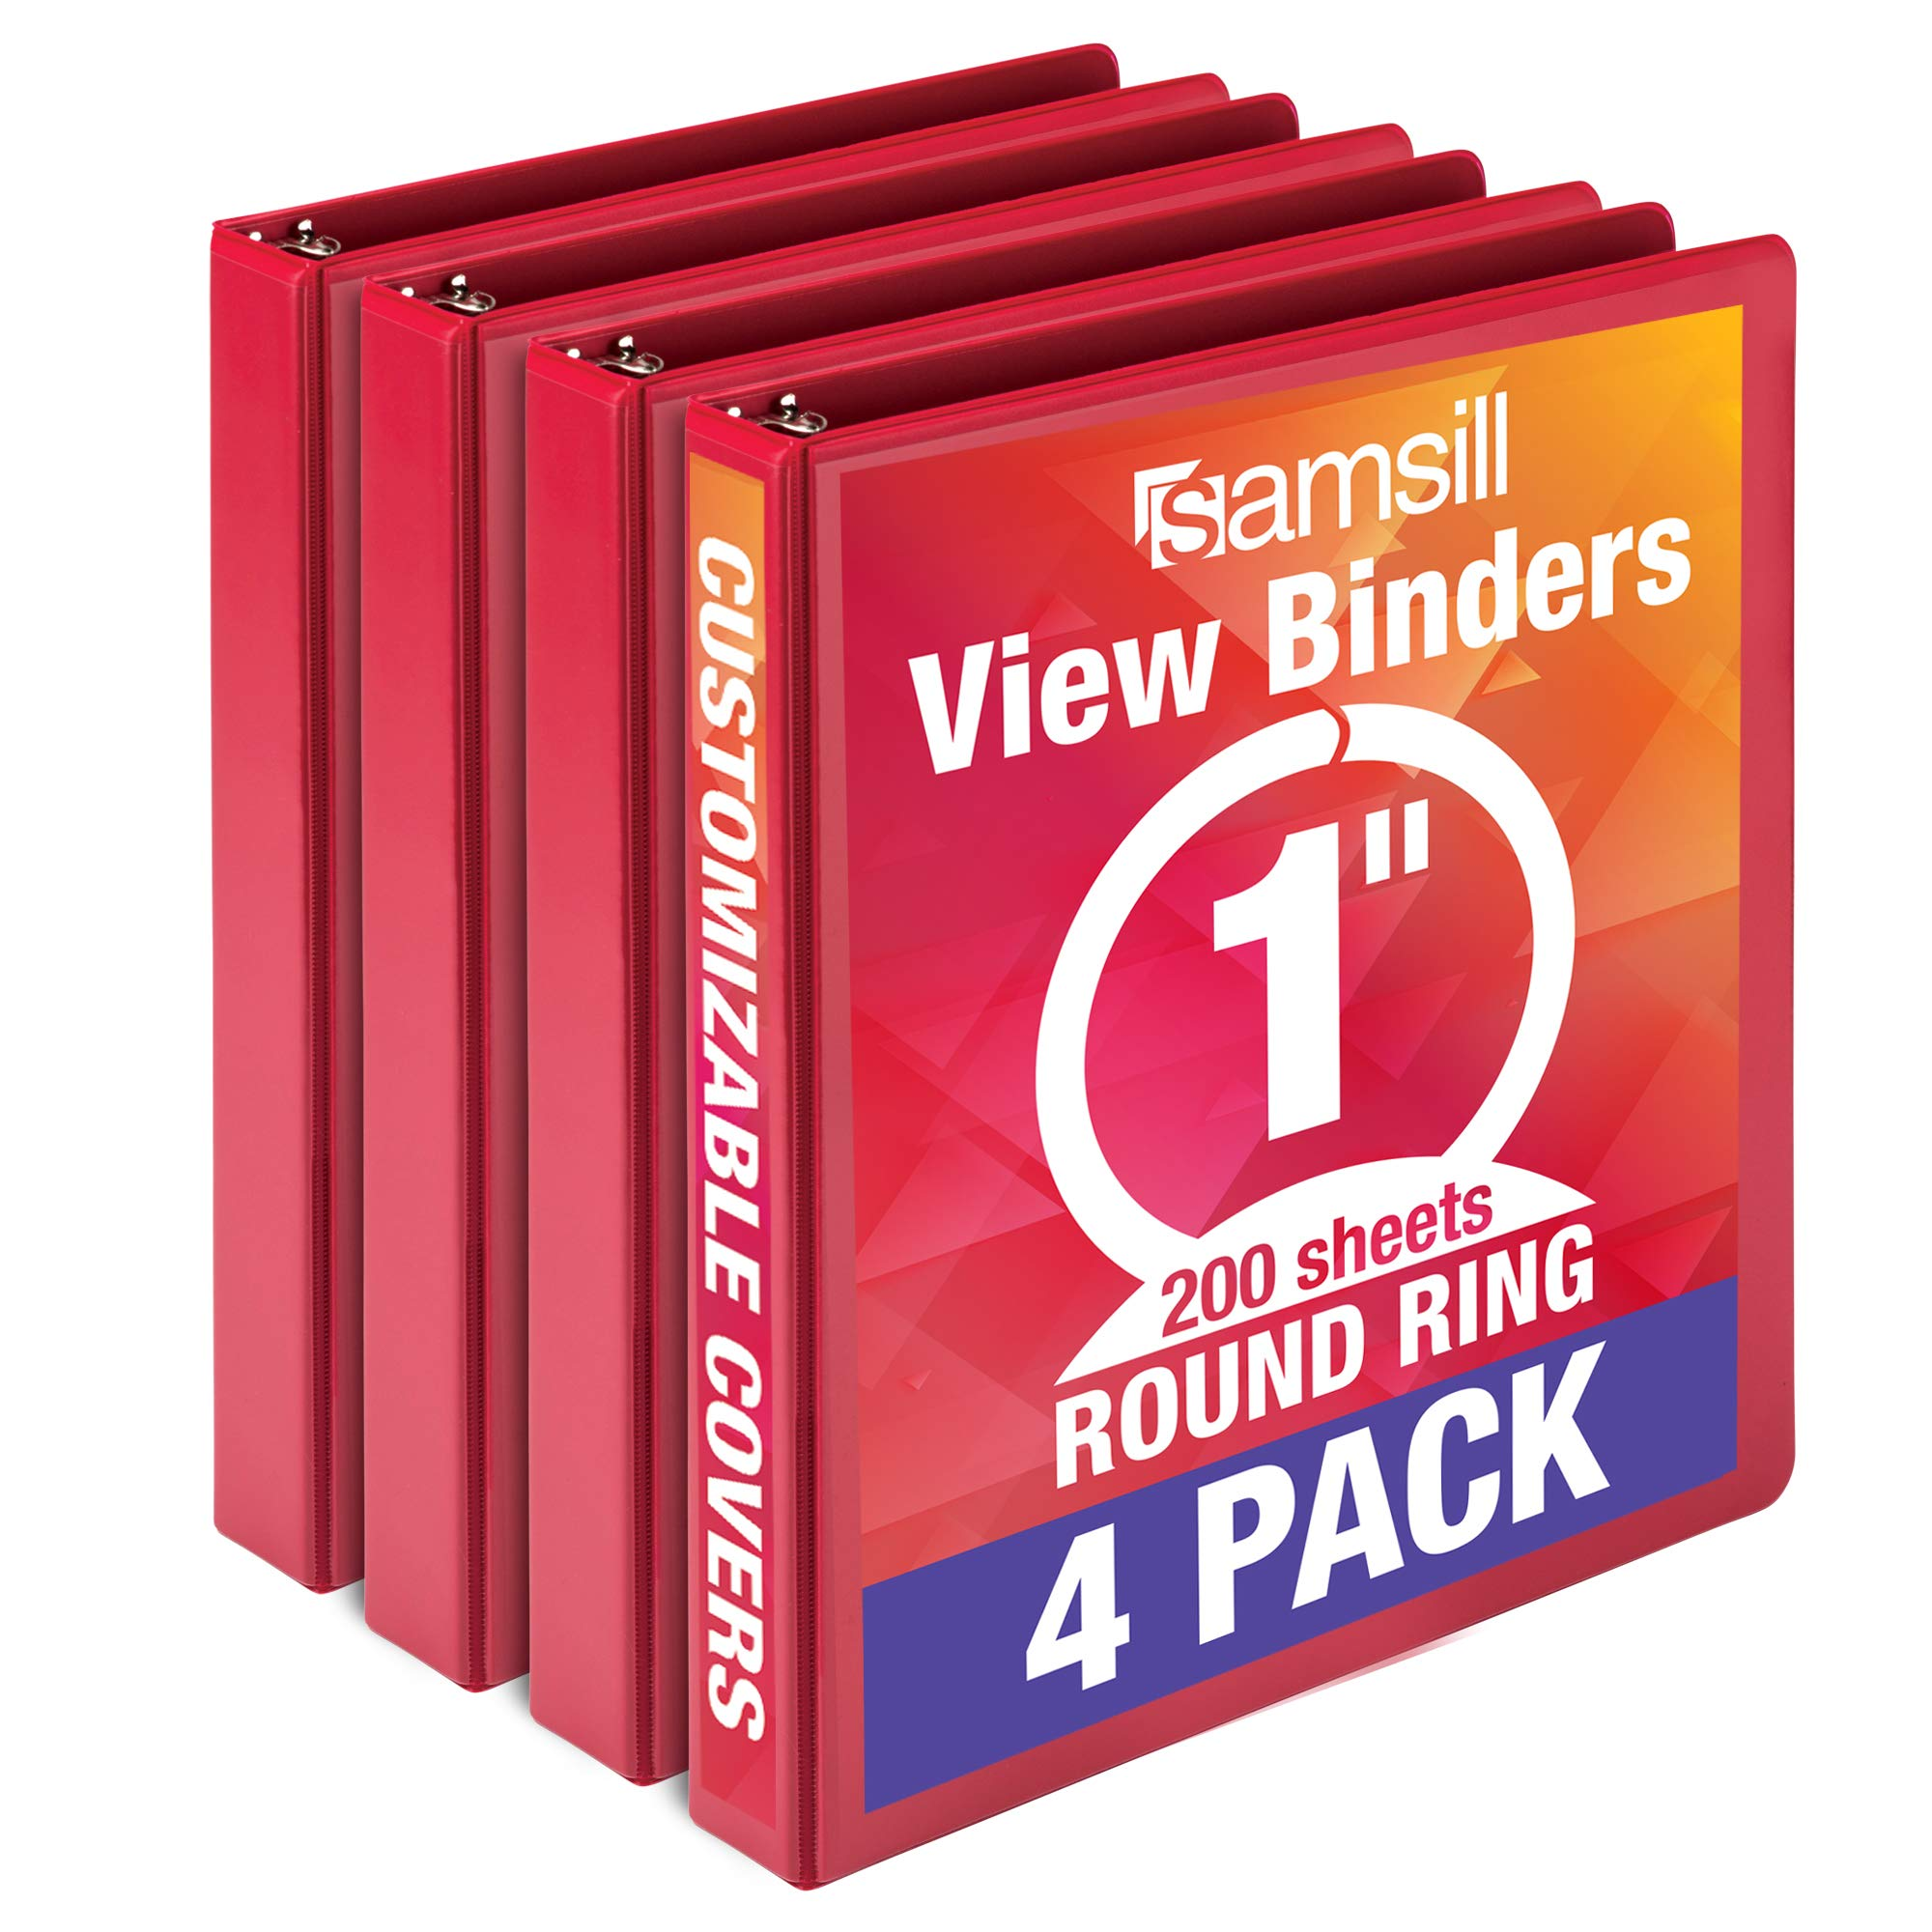 Samsill Economy 3 Ring Binder Organizer, 1.5 Inch Round Ring Binder, Customizable Clear View Cover, Red Bulk Binder 4 Pack